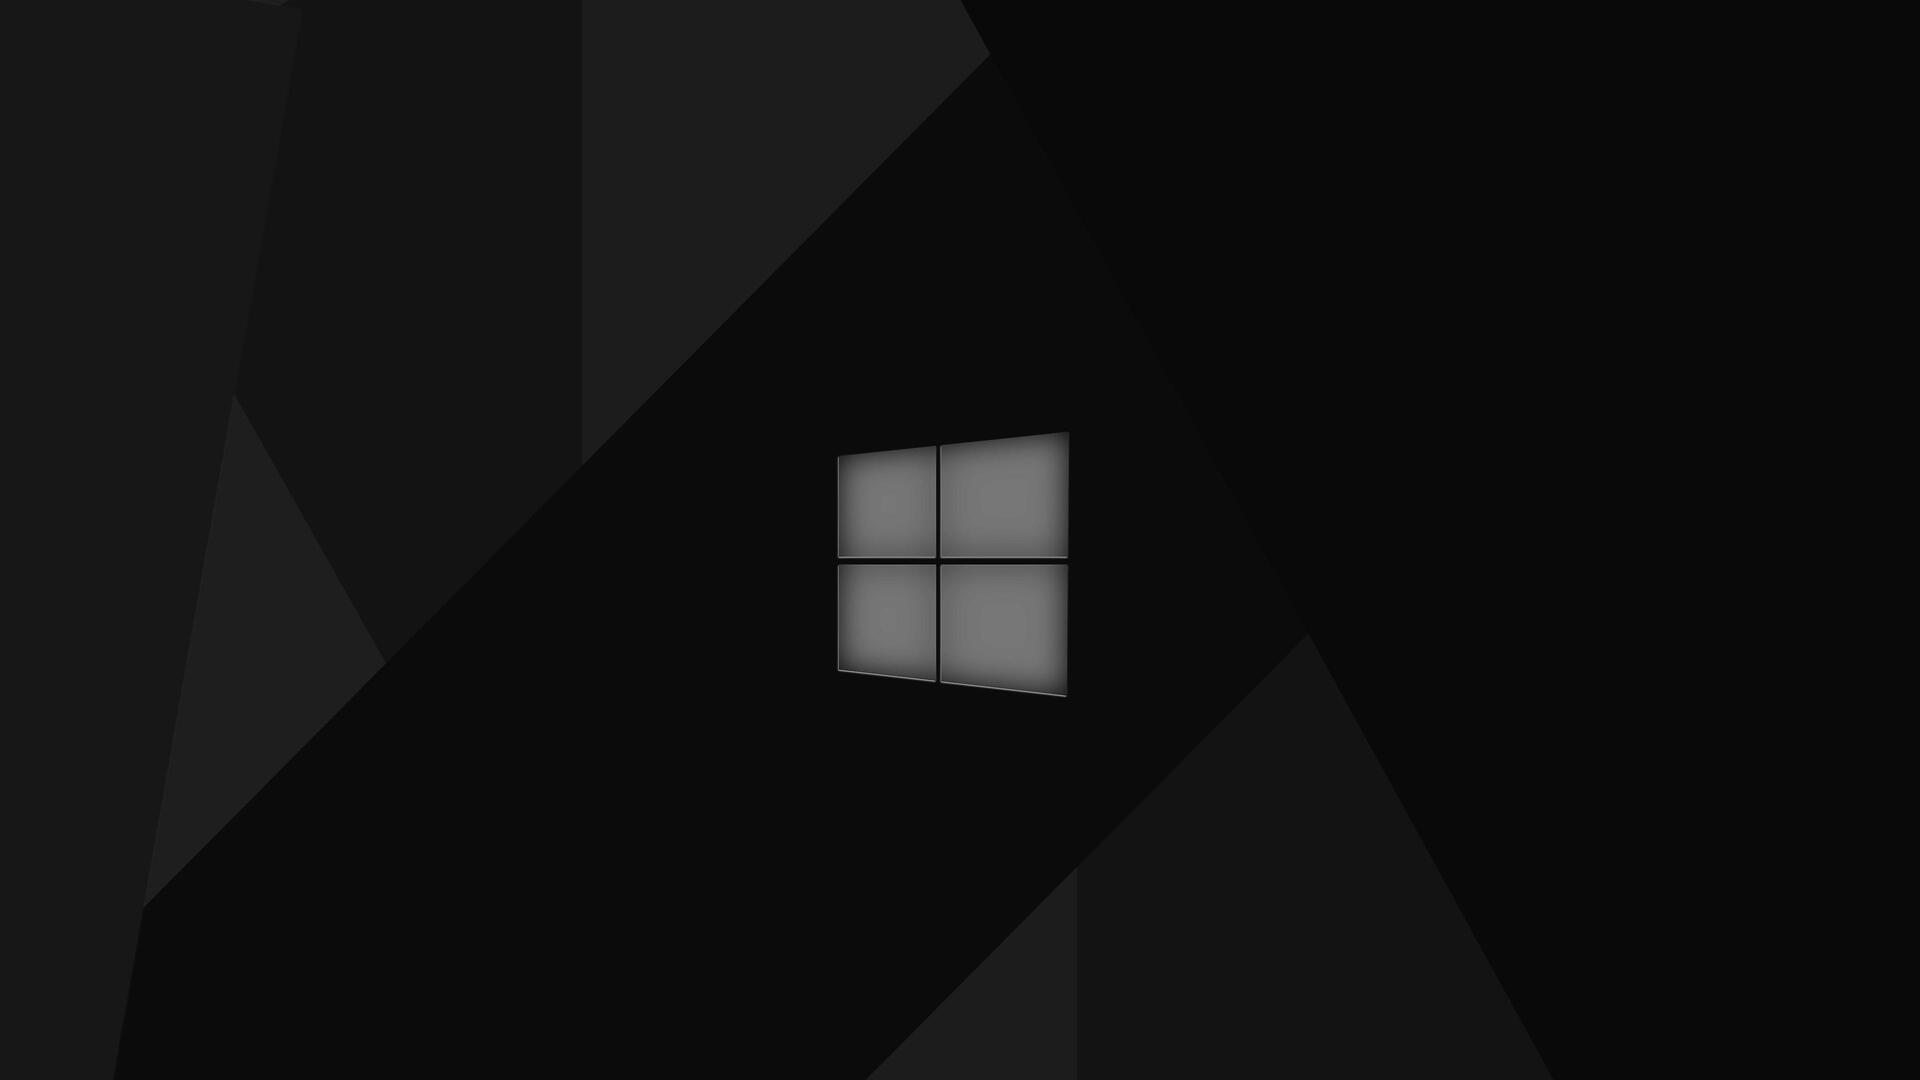 1920x1080 Windows 10 Material Design 4k